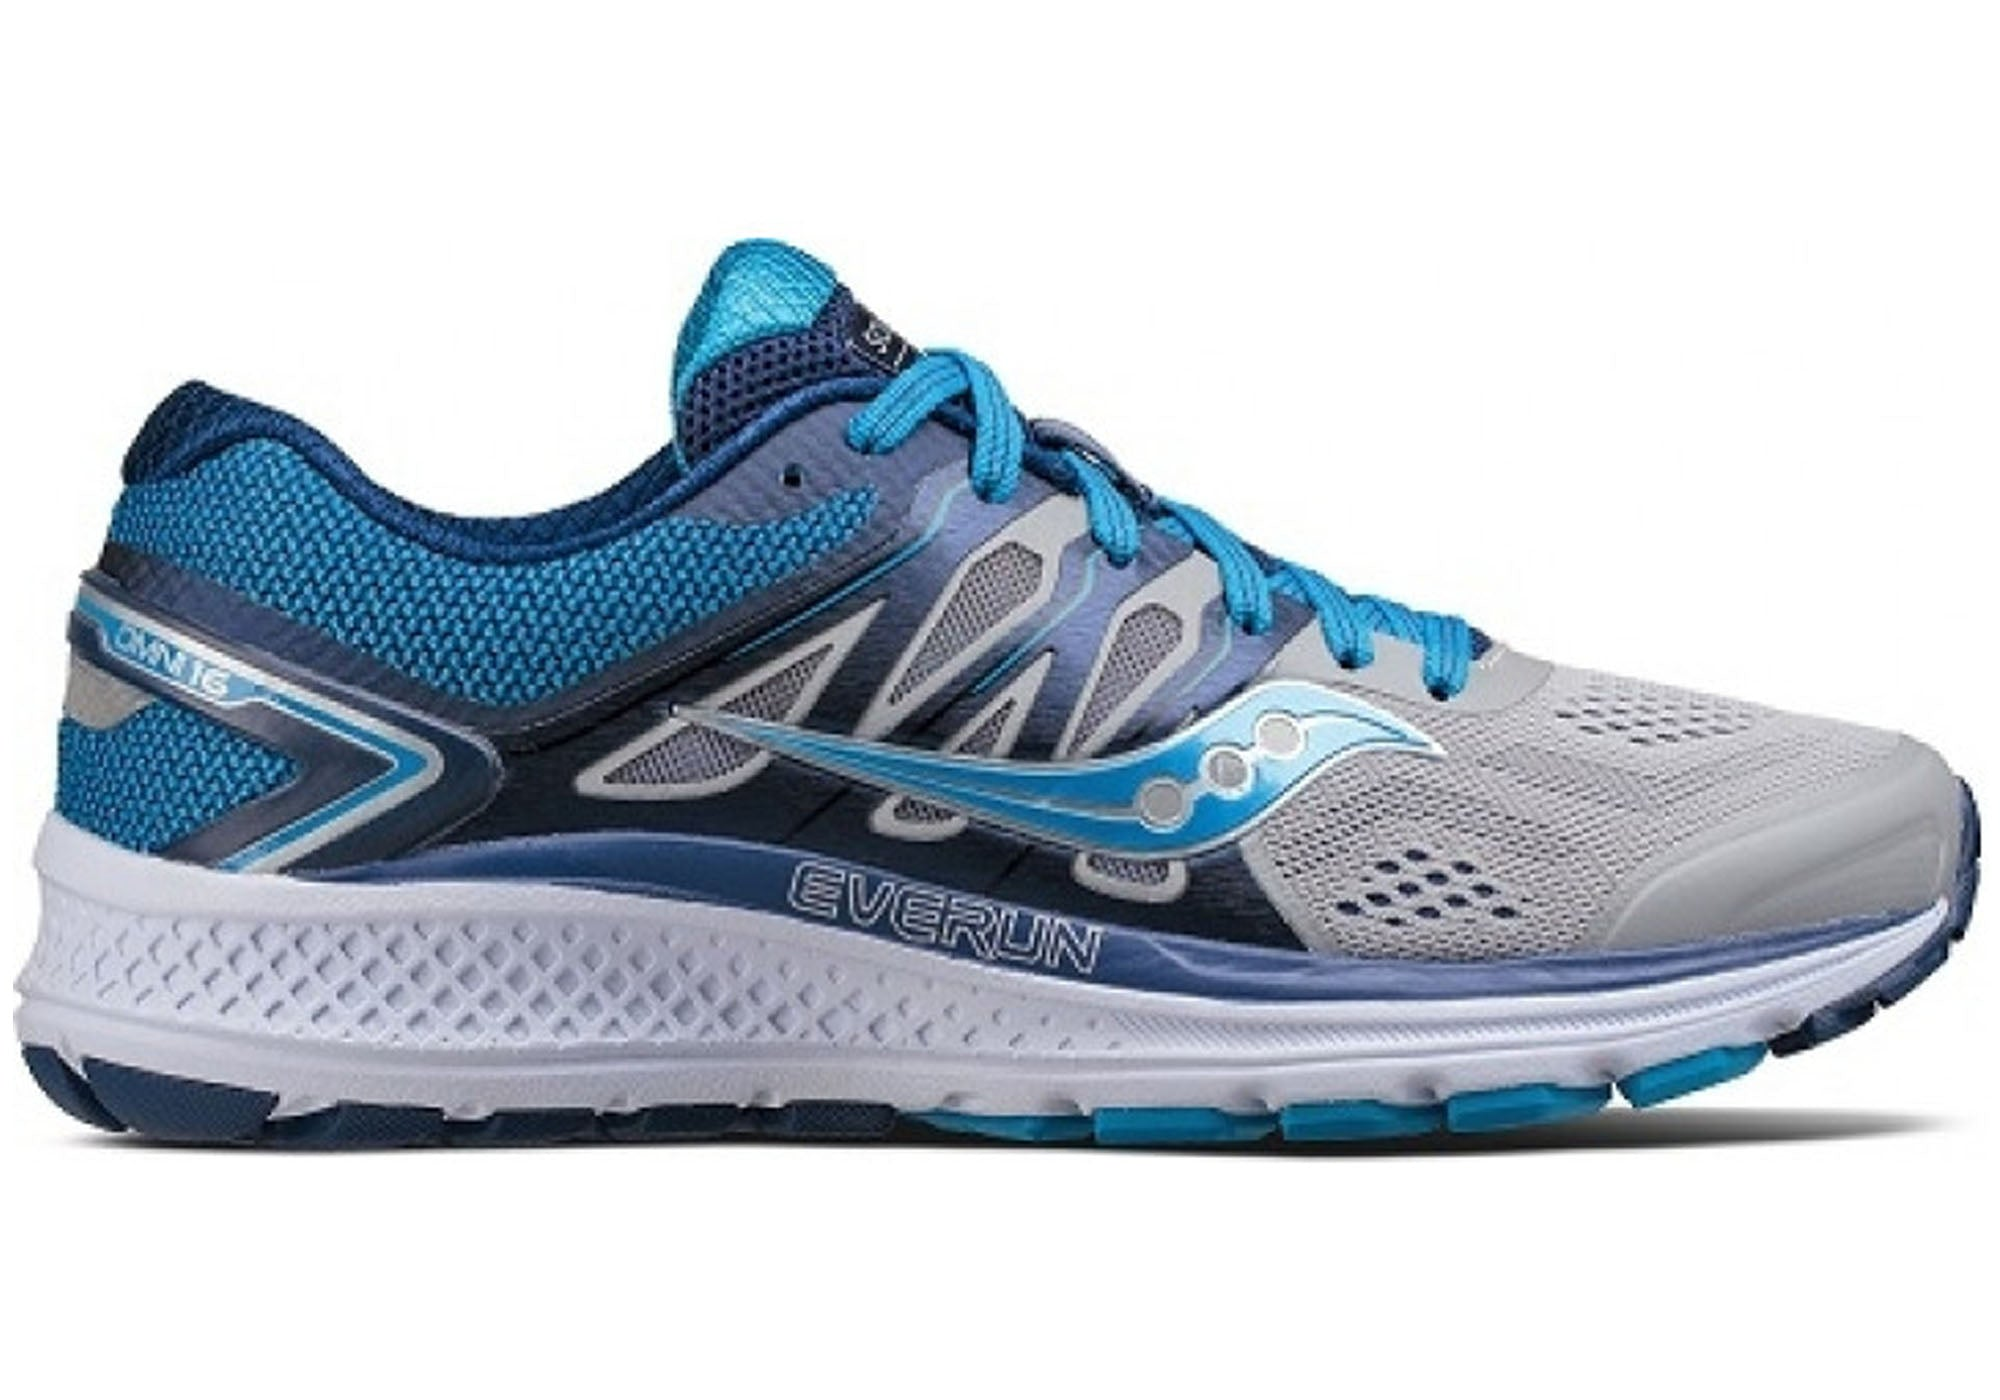 Saucony Shoes Womens Wide